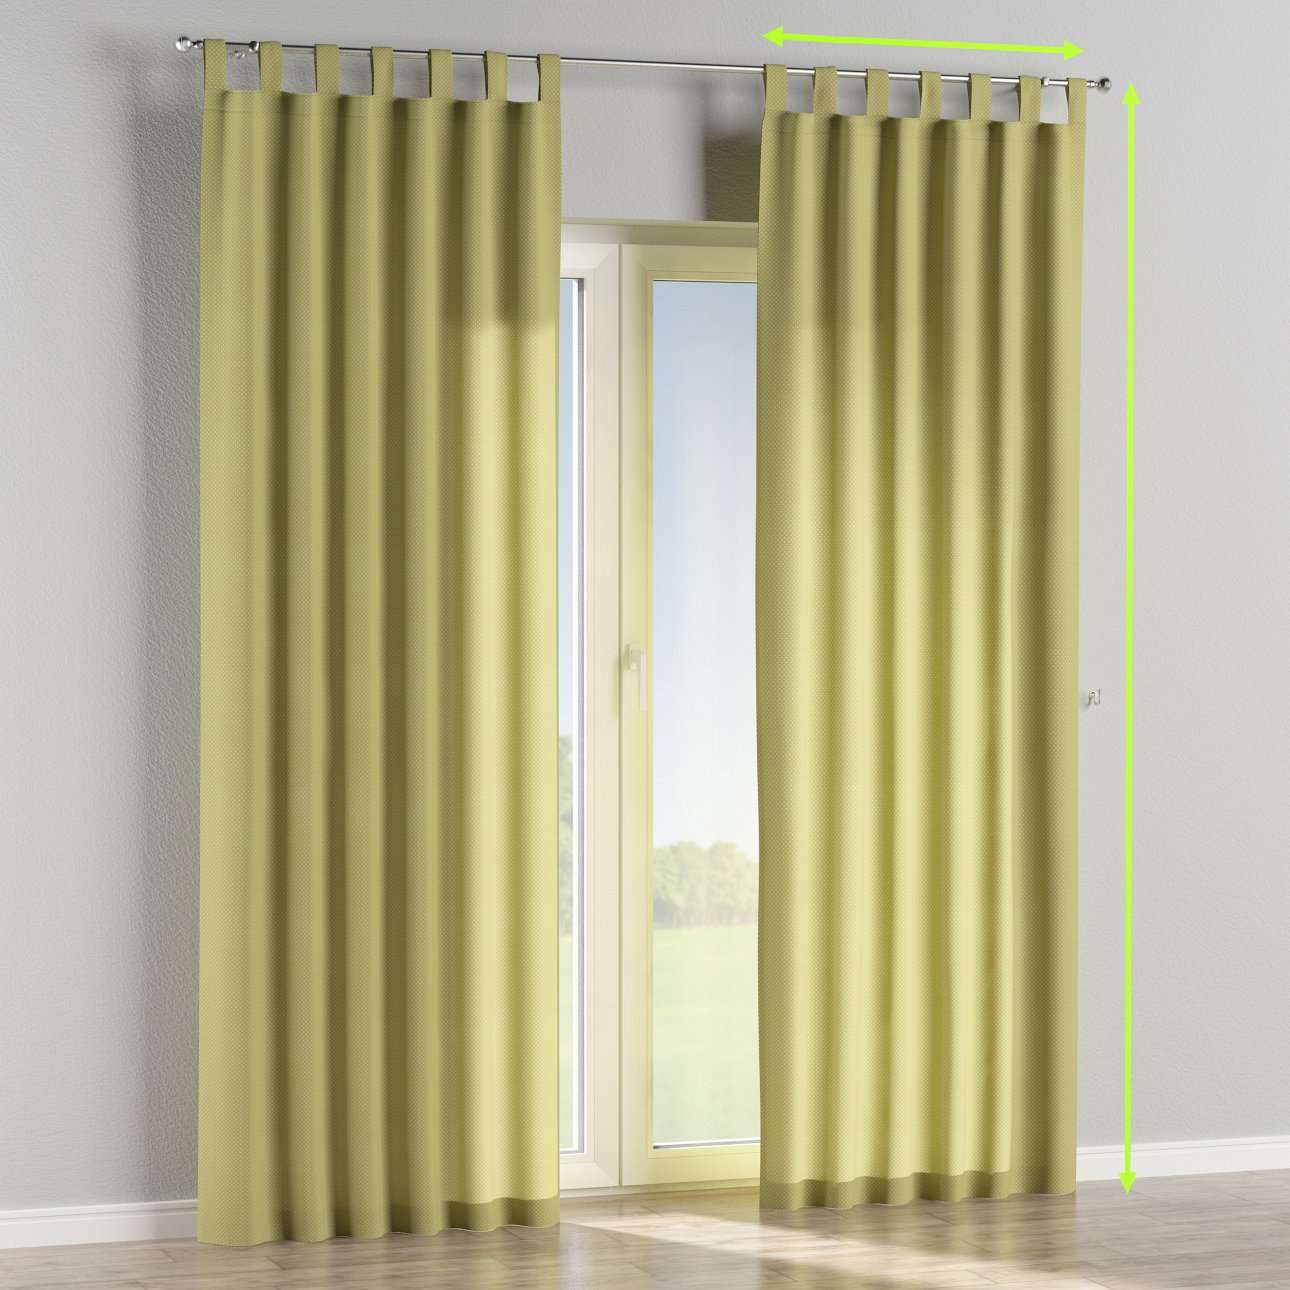 Tab top curtains in collection Ashley, fabric: 137-51